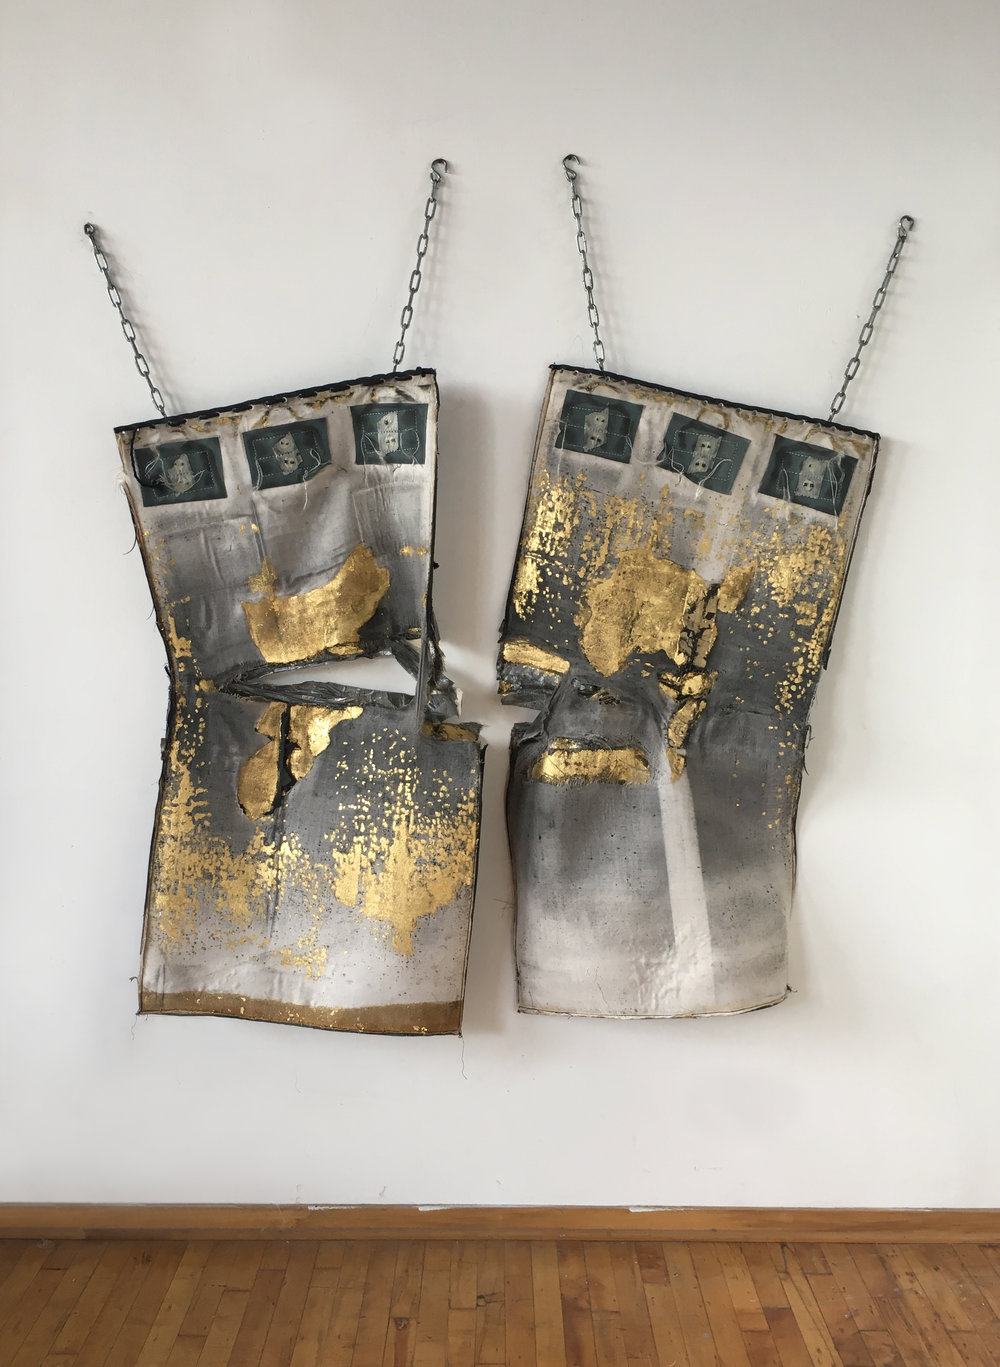 Cheryl Pope     Heavyweight (2017)     23k gold leaf, steel chains, used leathery Heavy boxing bag, duct tape